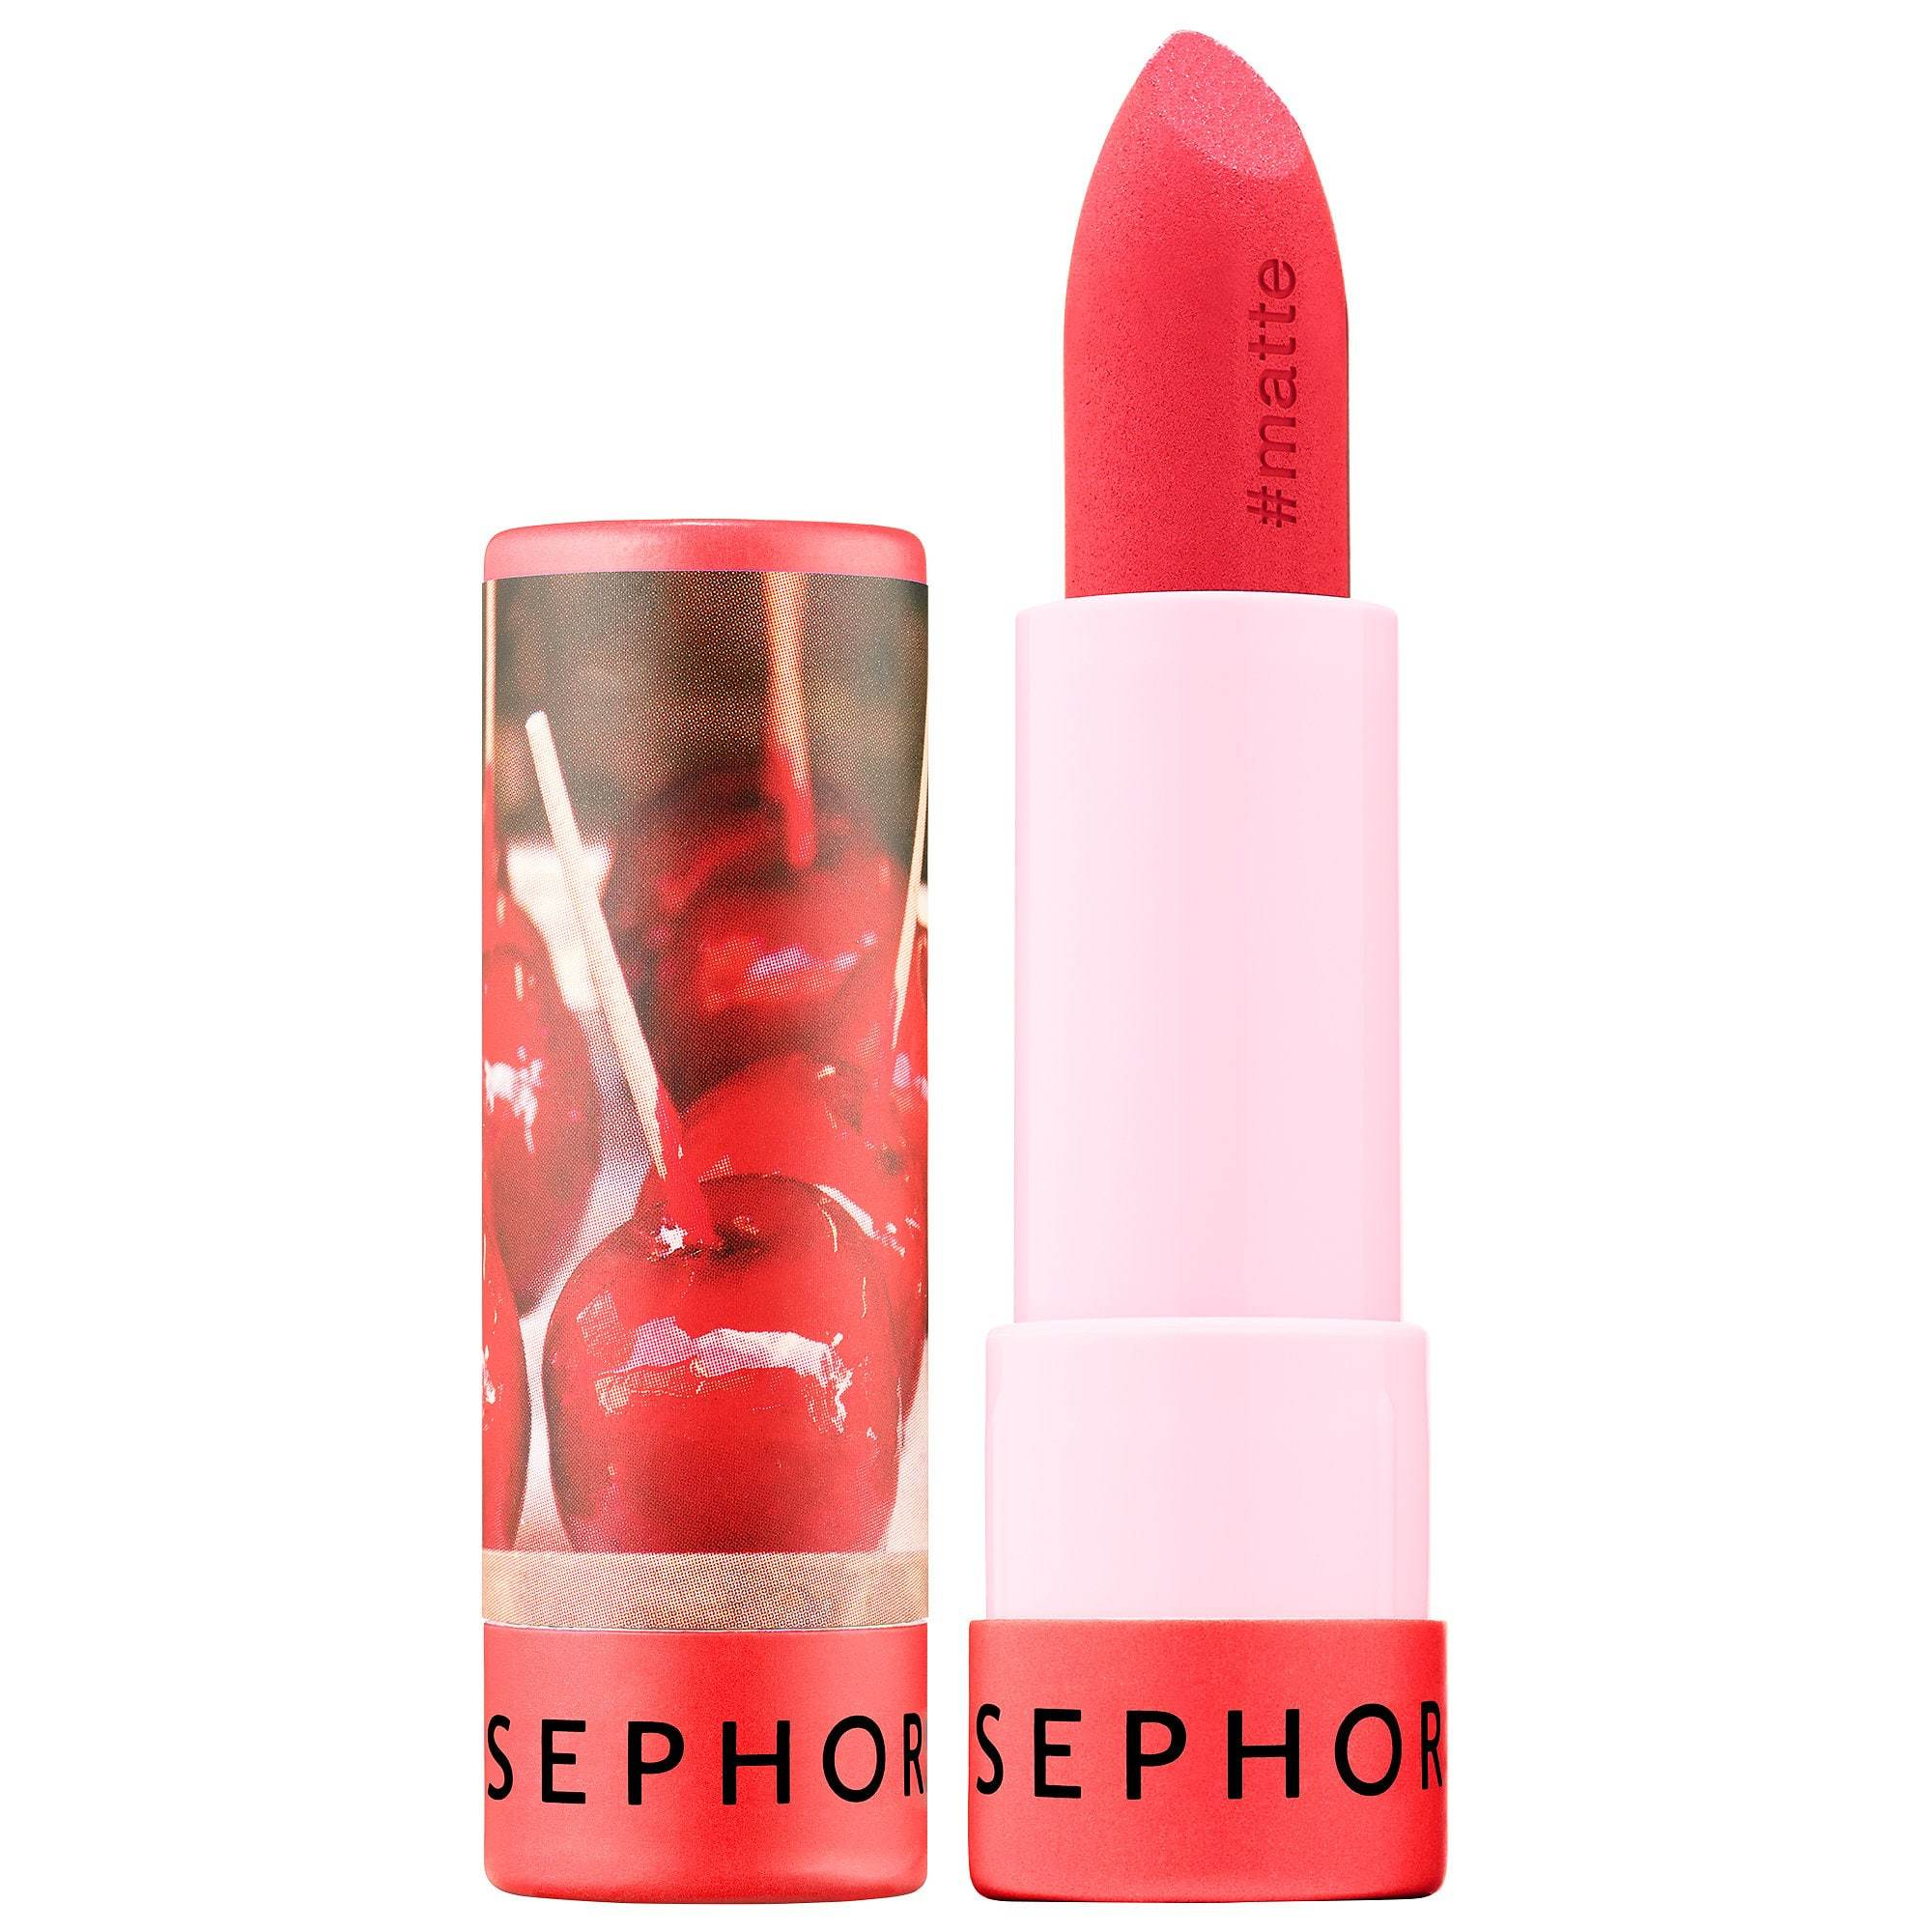 Sephora #Lipstories Lipstick Take A Bite 35